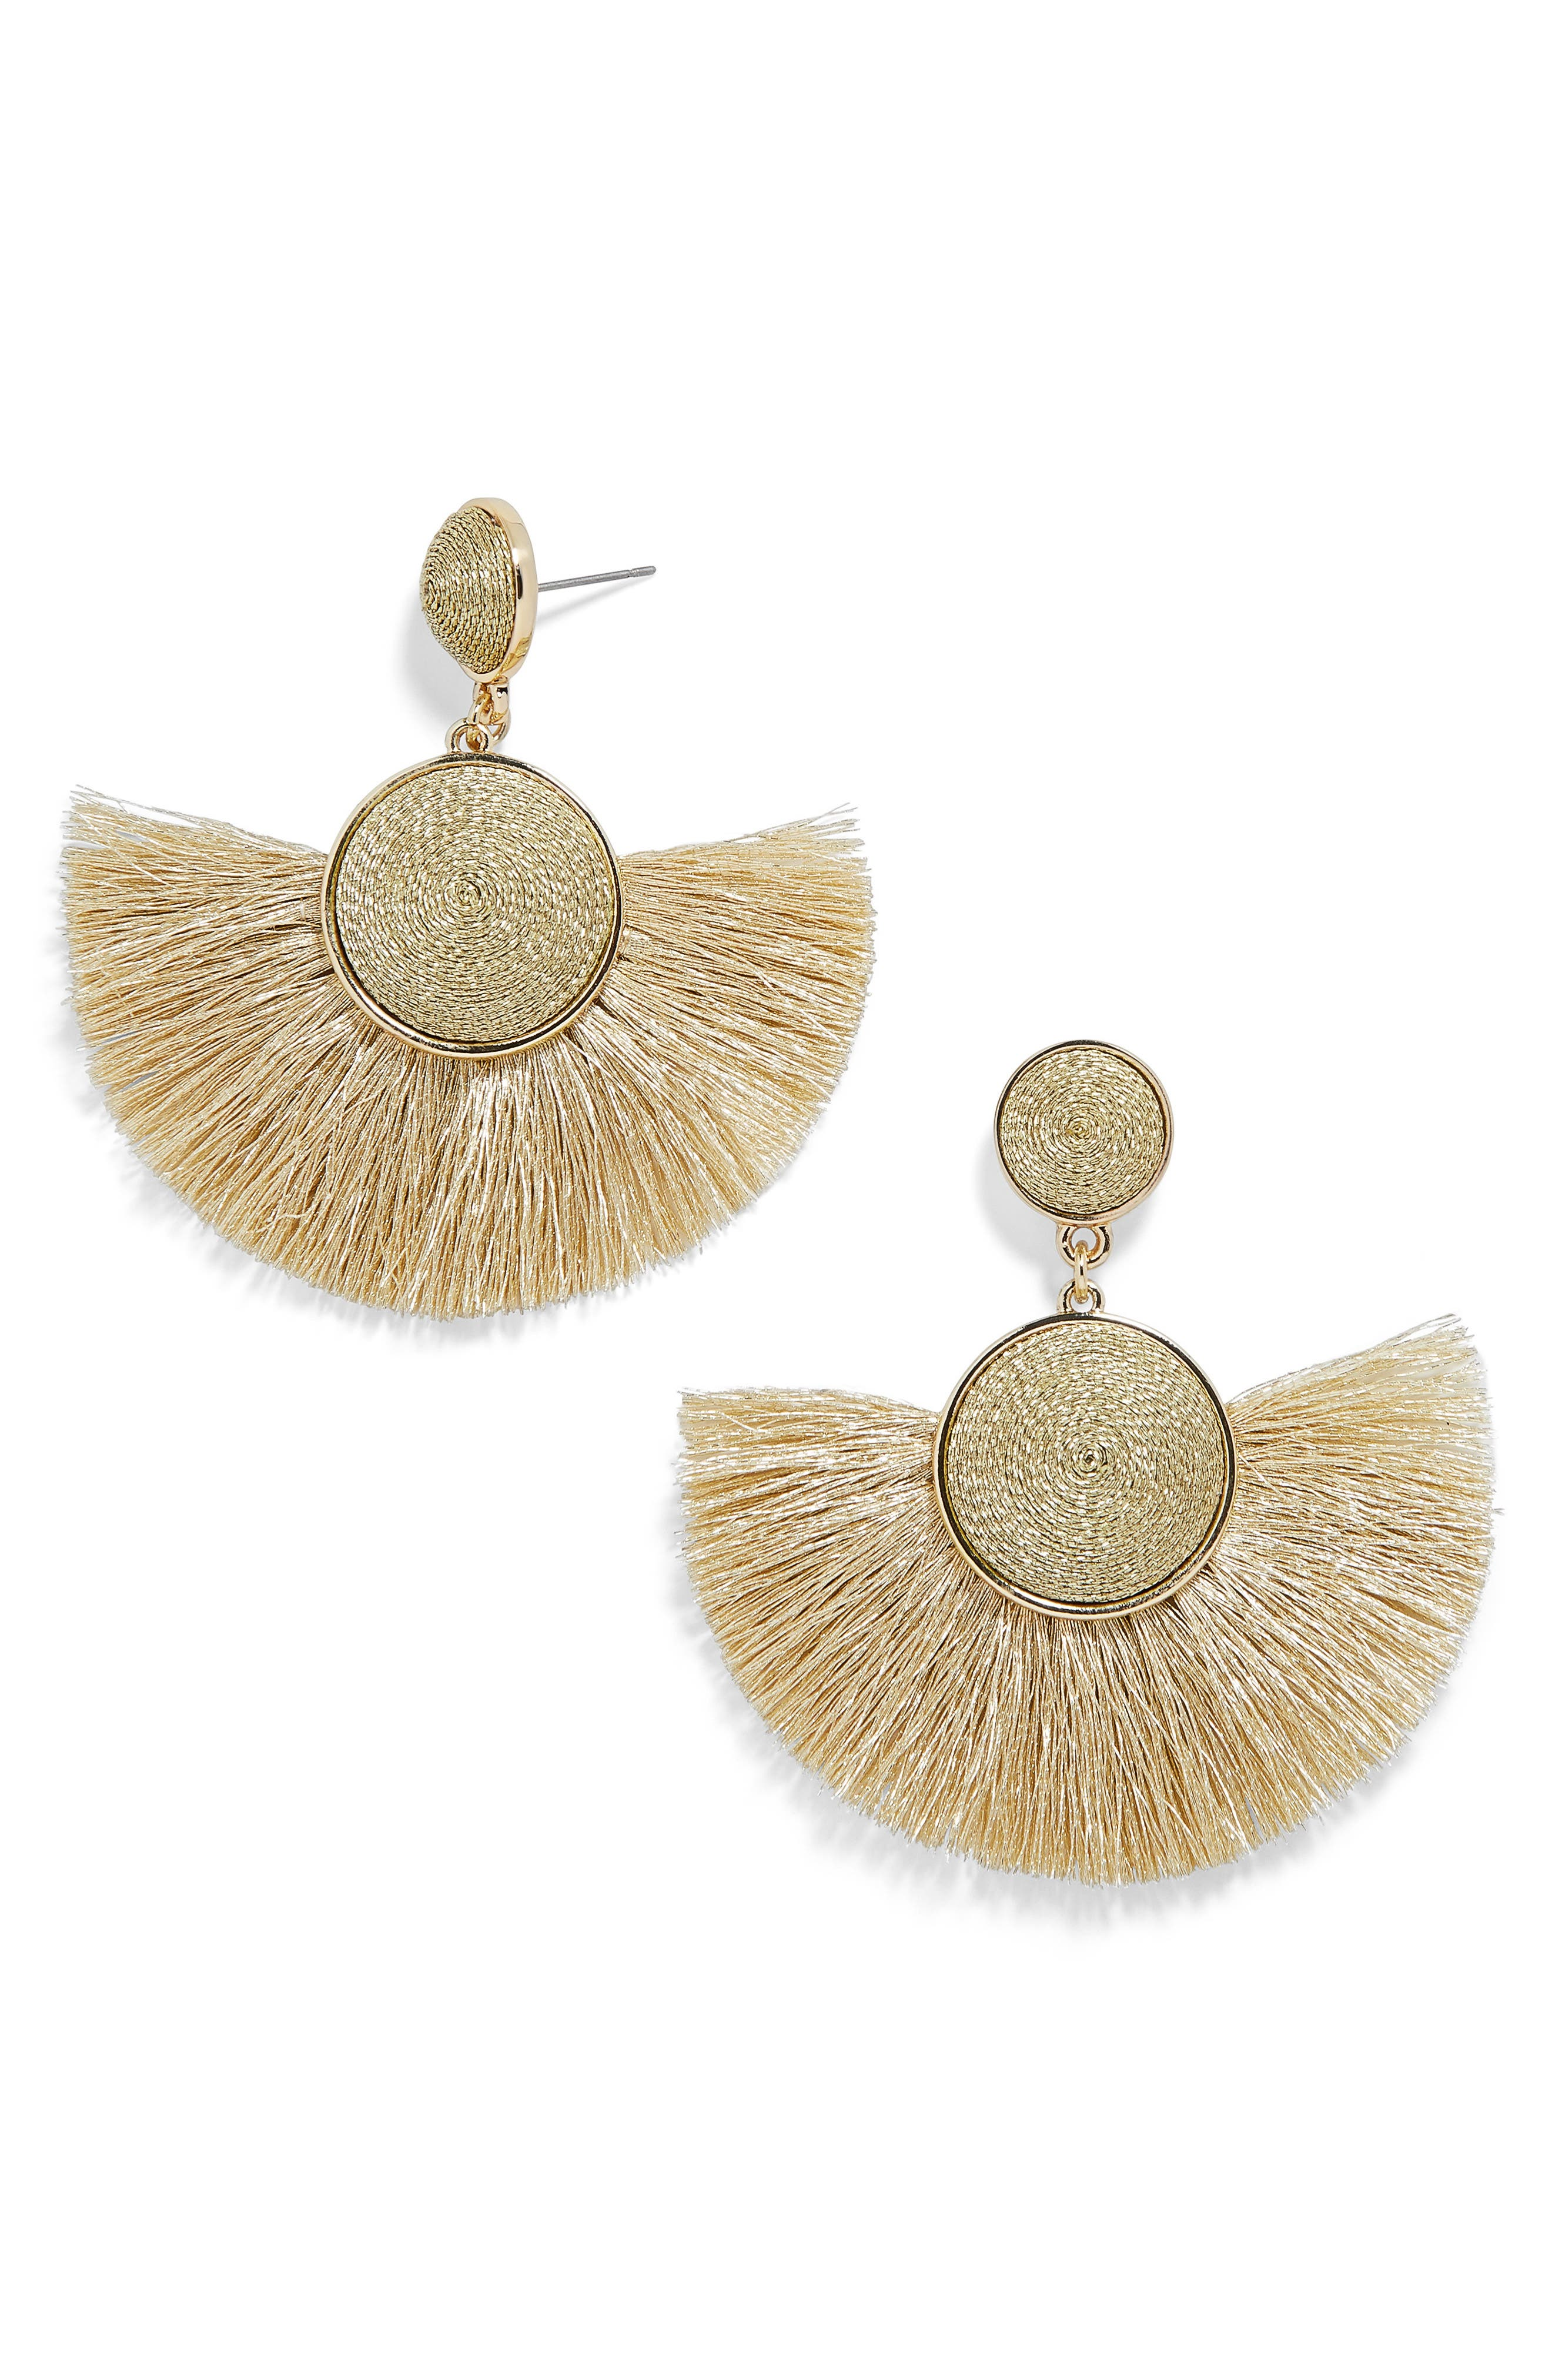 60s -70s Jewelry – Necklaces, Earrings, Rings, Bracelets Womens Baublebar Marinella Fringe Drop Earrings $38.00 AT vintagedancer.com